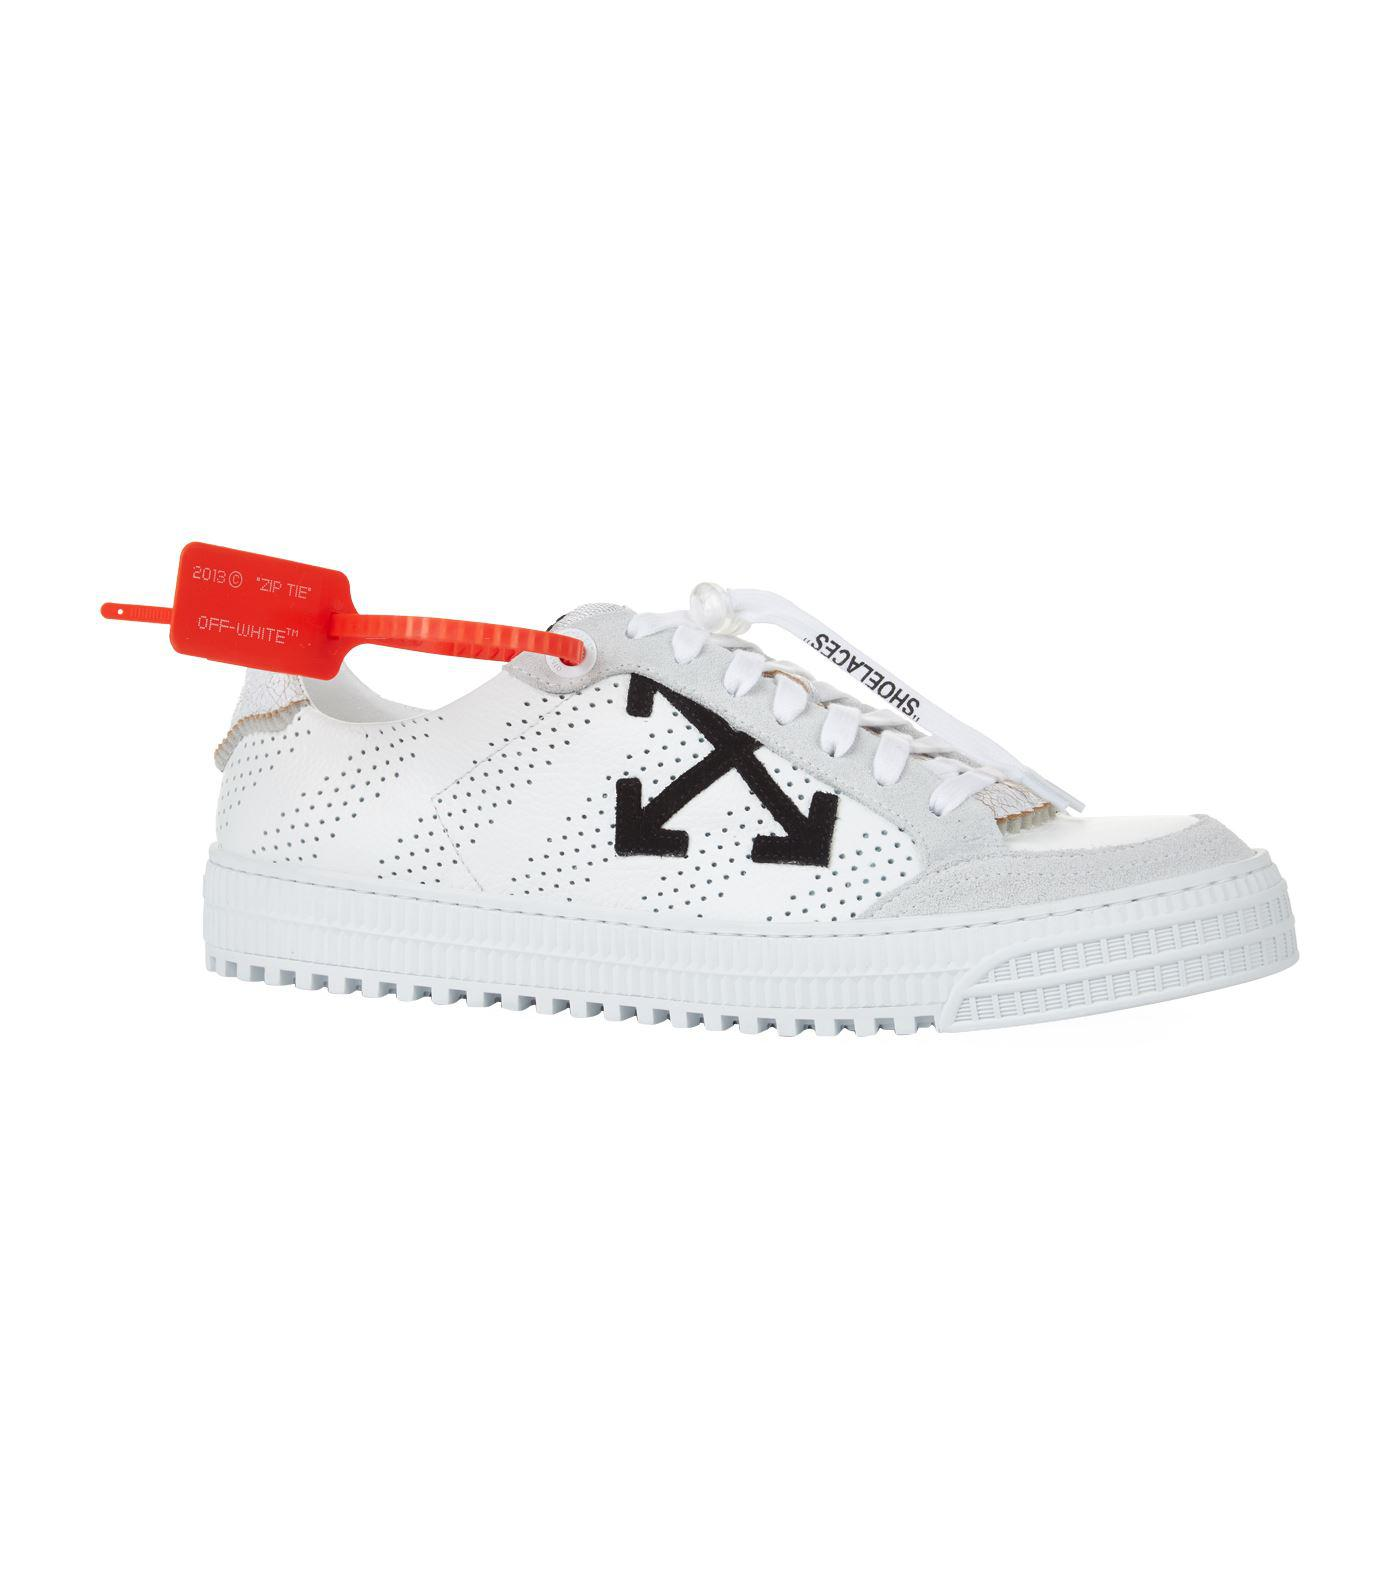 cd111ccac Off-White C O Virgil Abloh Leather 3.0 Polo Sneakers in White for ...